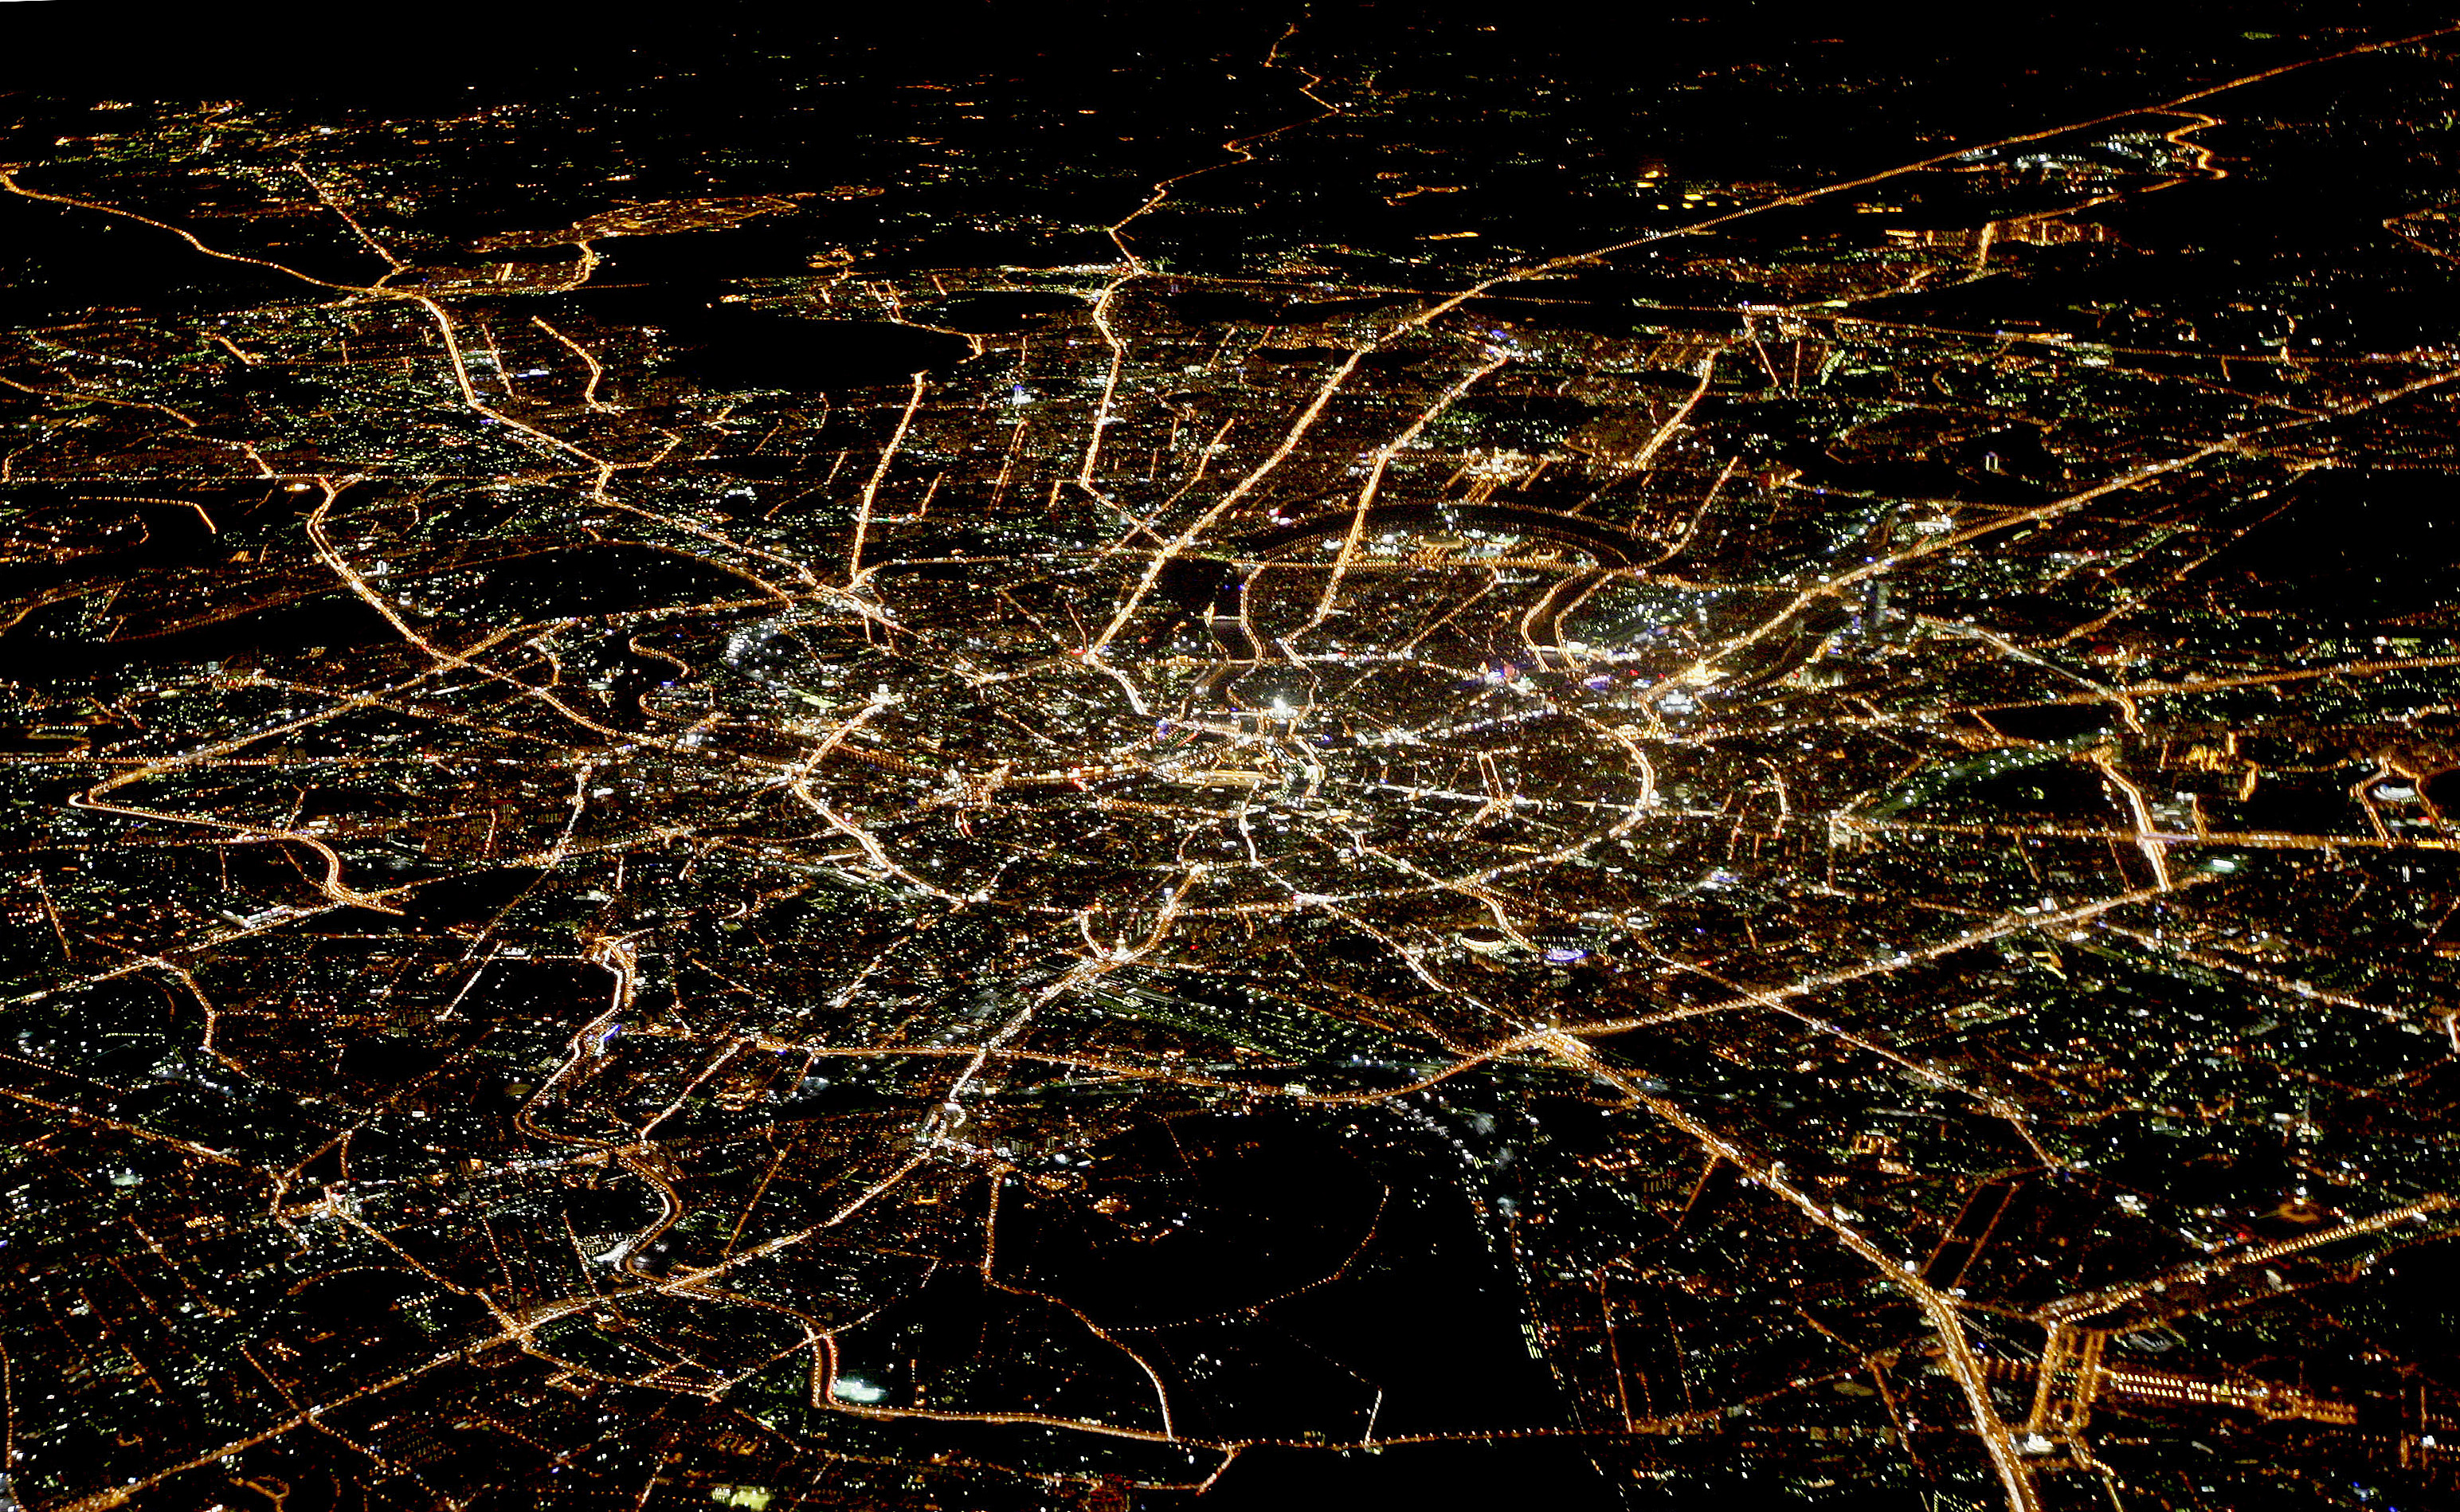 A general view of night Moscow is seen from the window of a passenger jet, October 8, 2010.